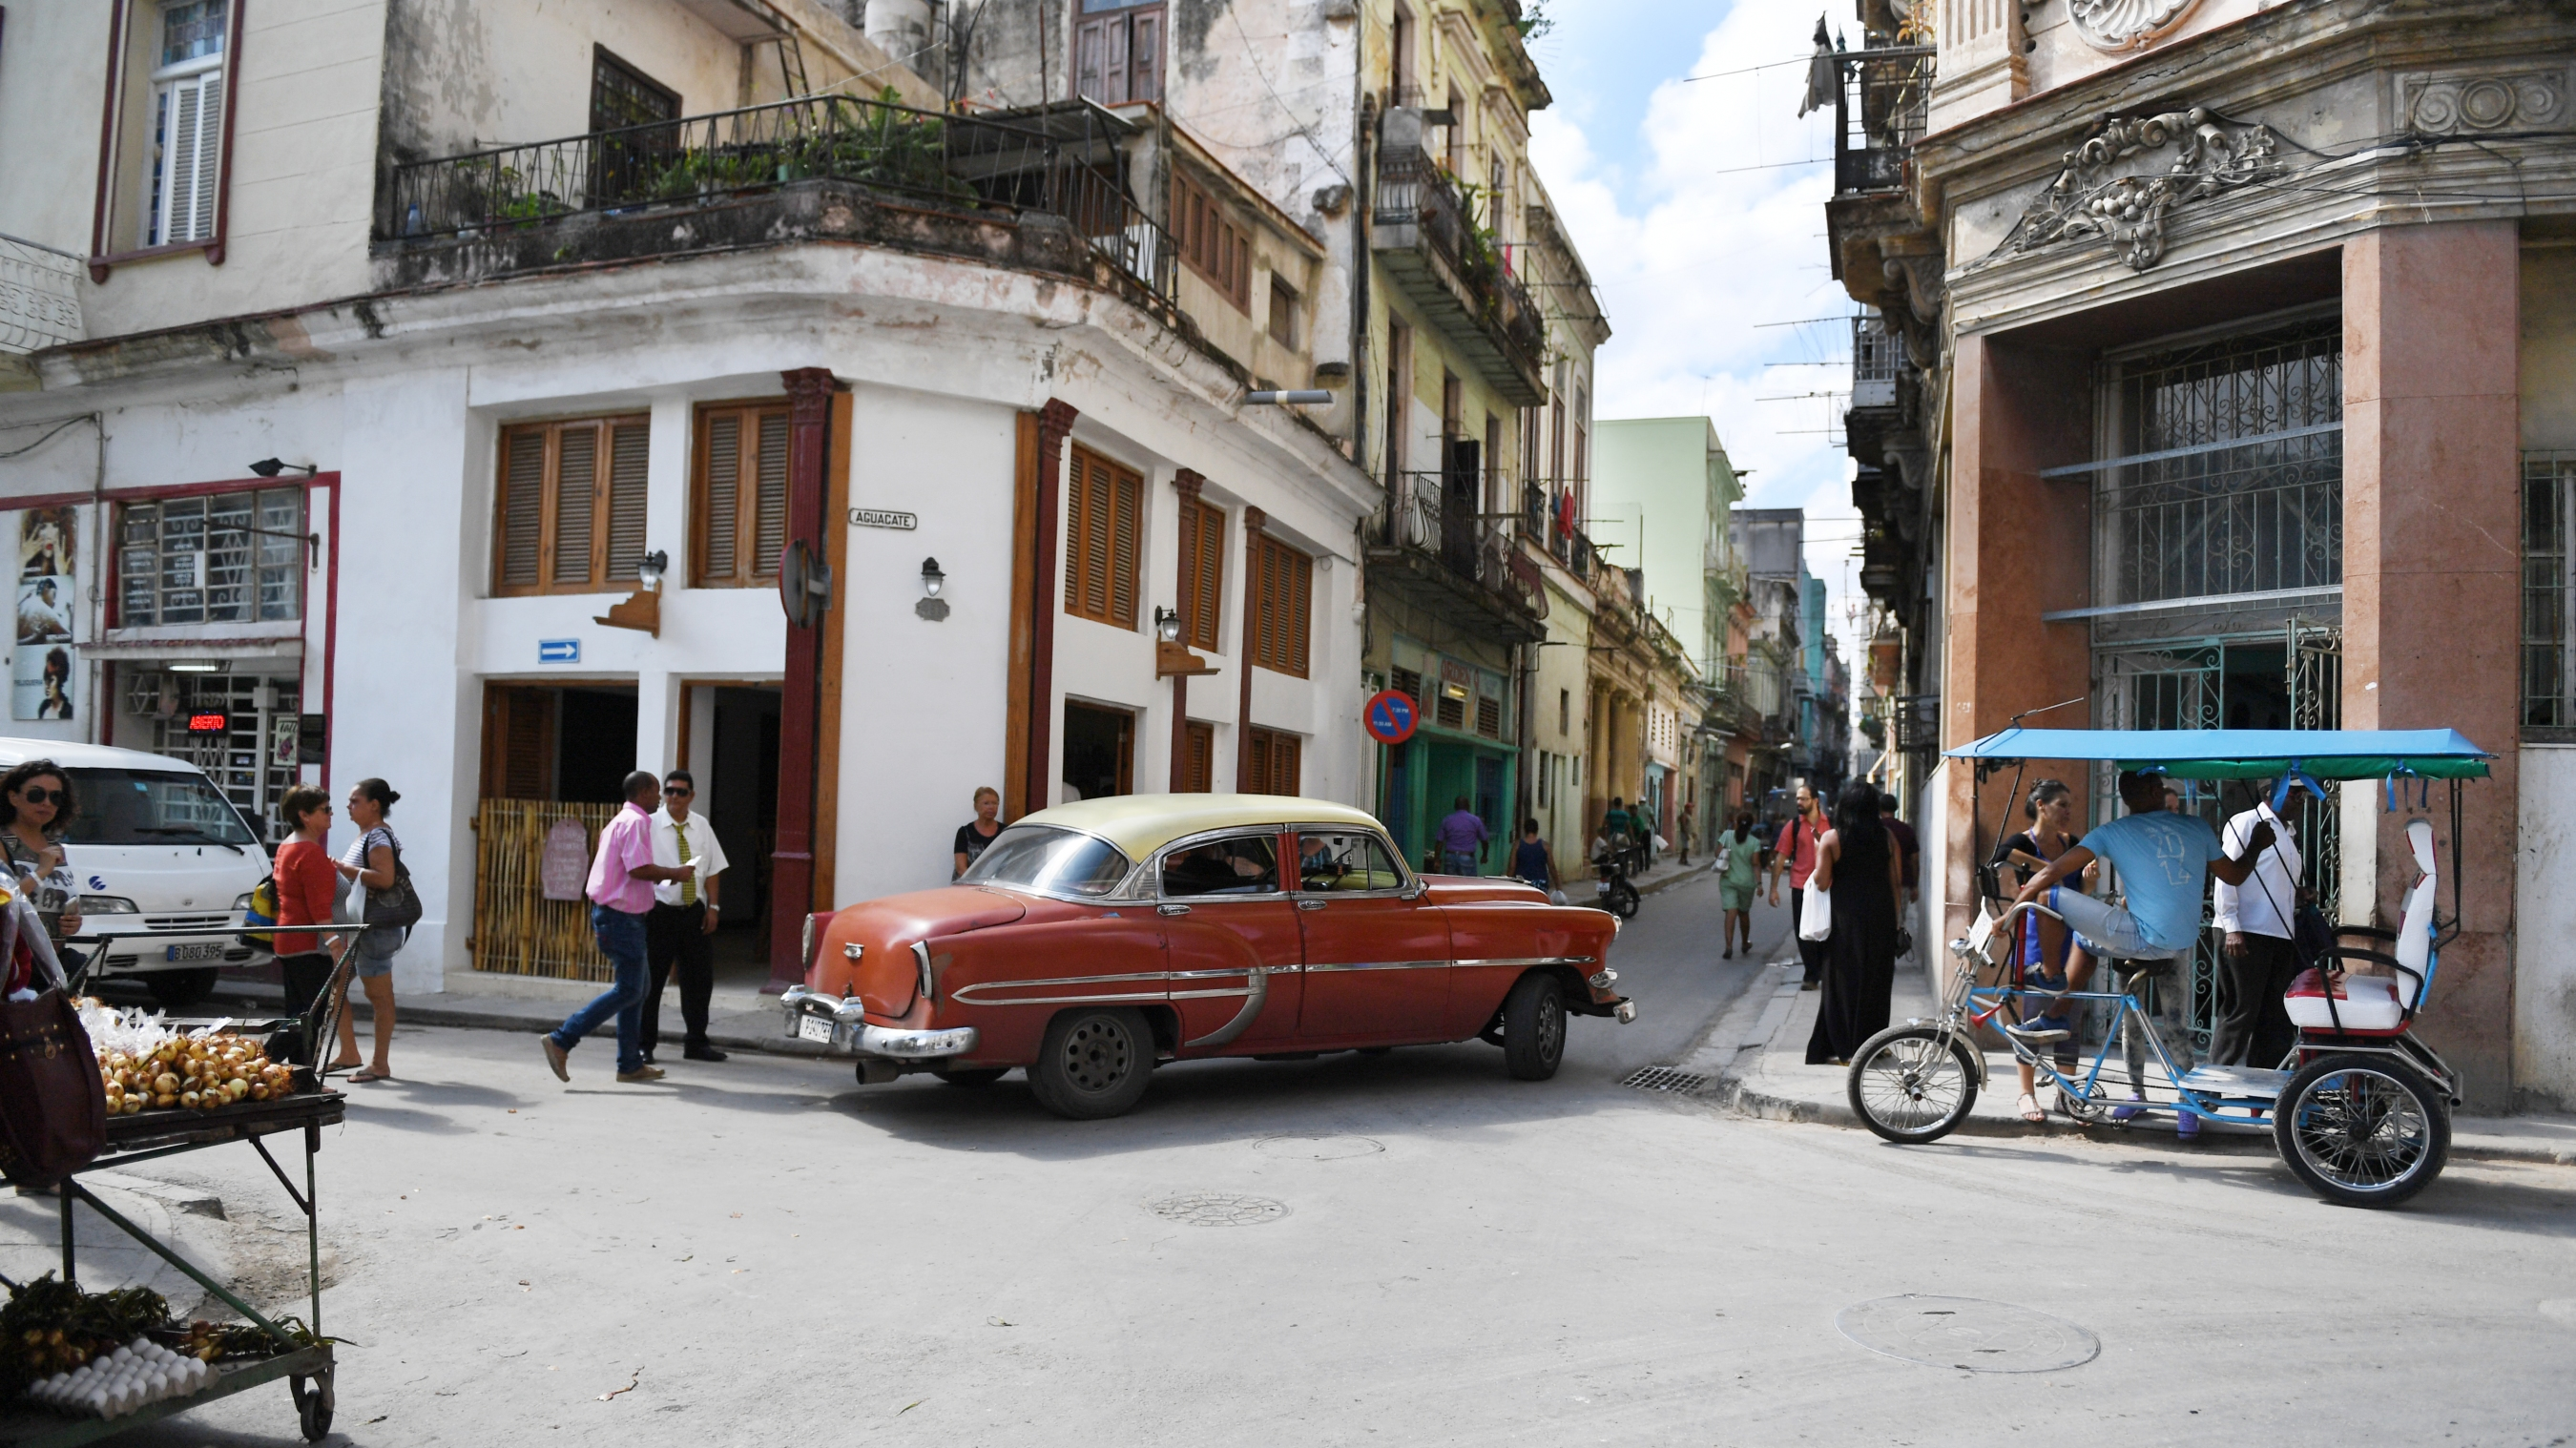 9a01cfe17109 The streets and scenes of Misty Copeland's trip to Havana